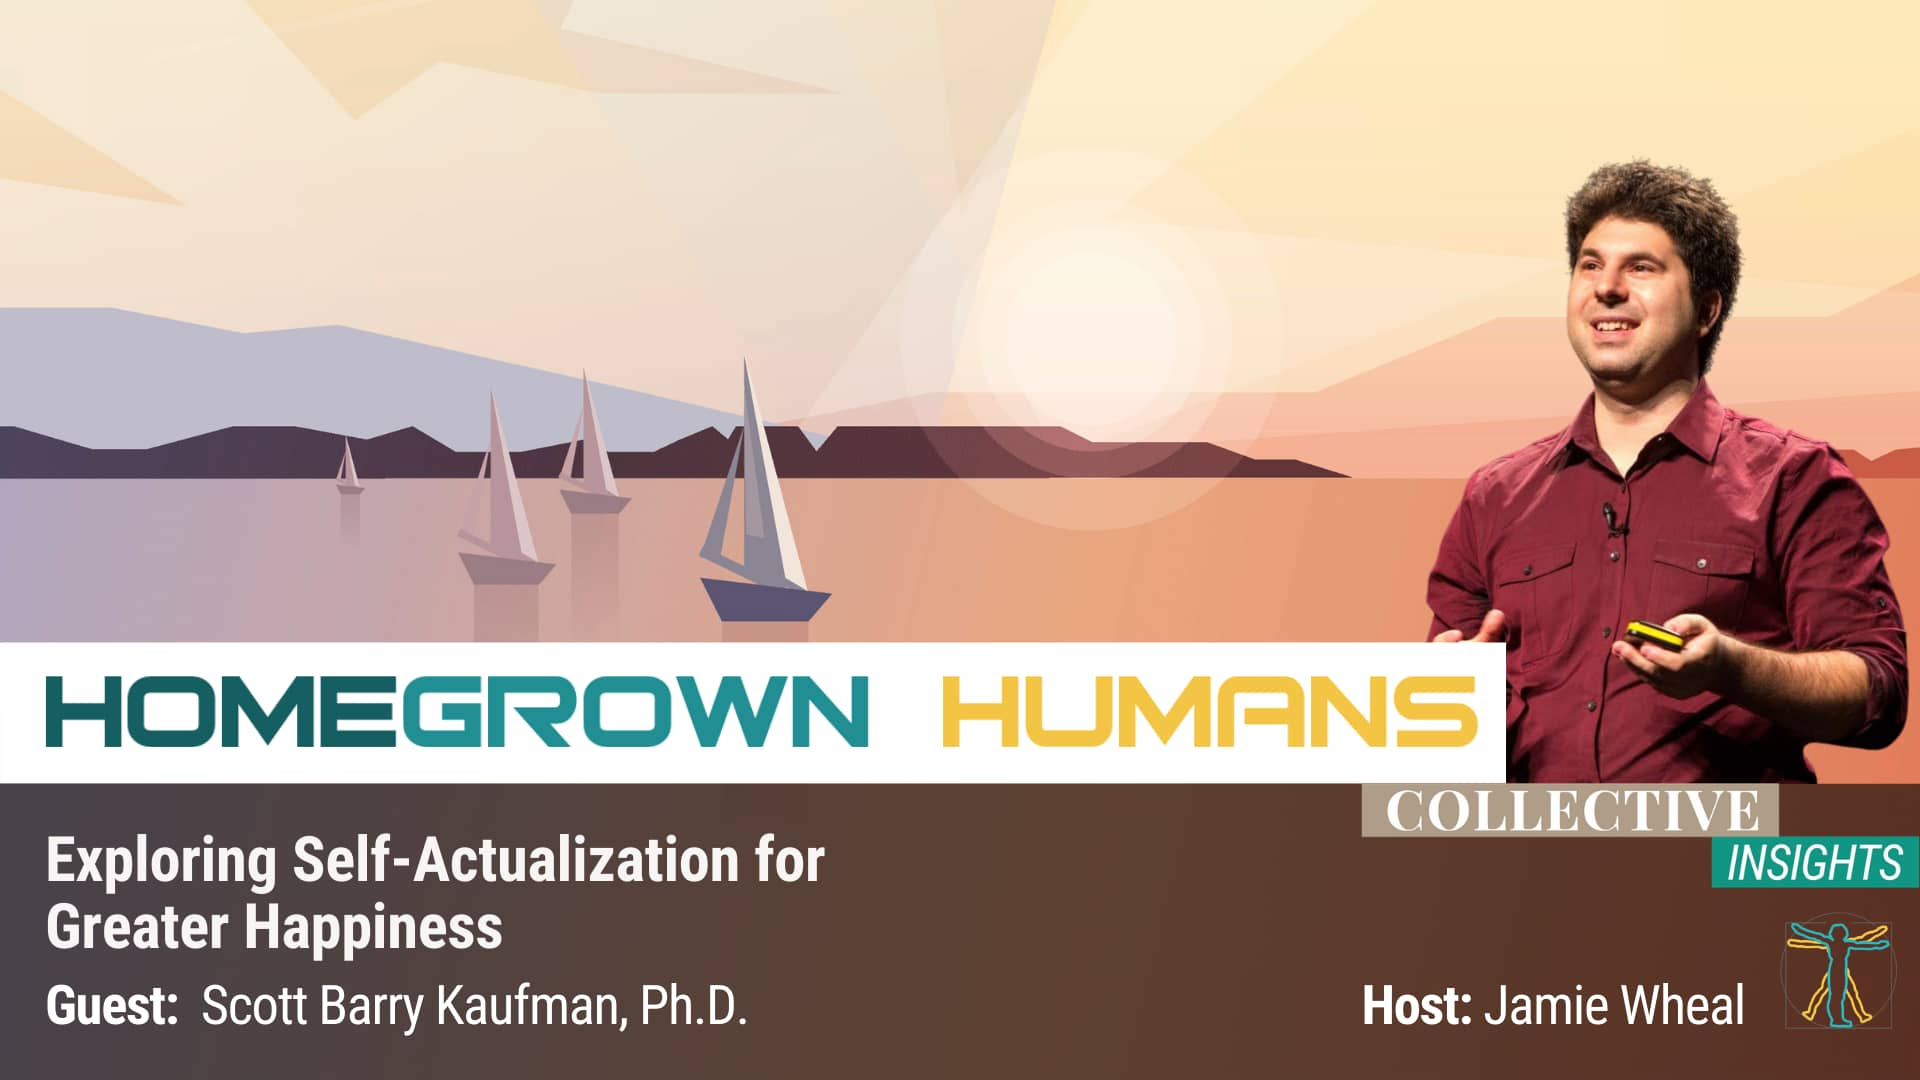 Home Grown Humans - Scott Barry Kaufman, Ph.D. - Self Actualization - Hosted by Jamie Wheal